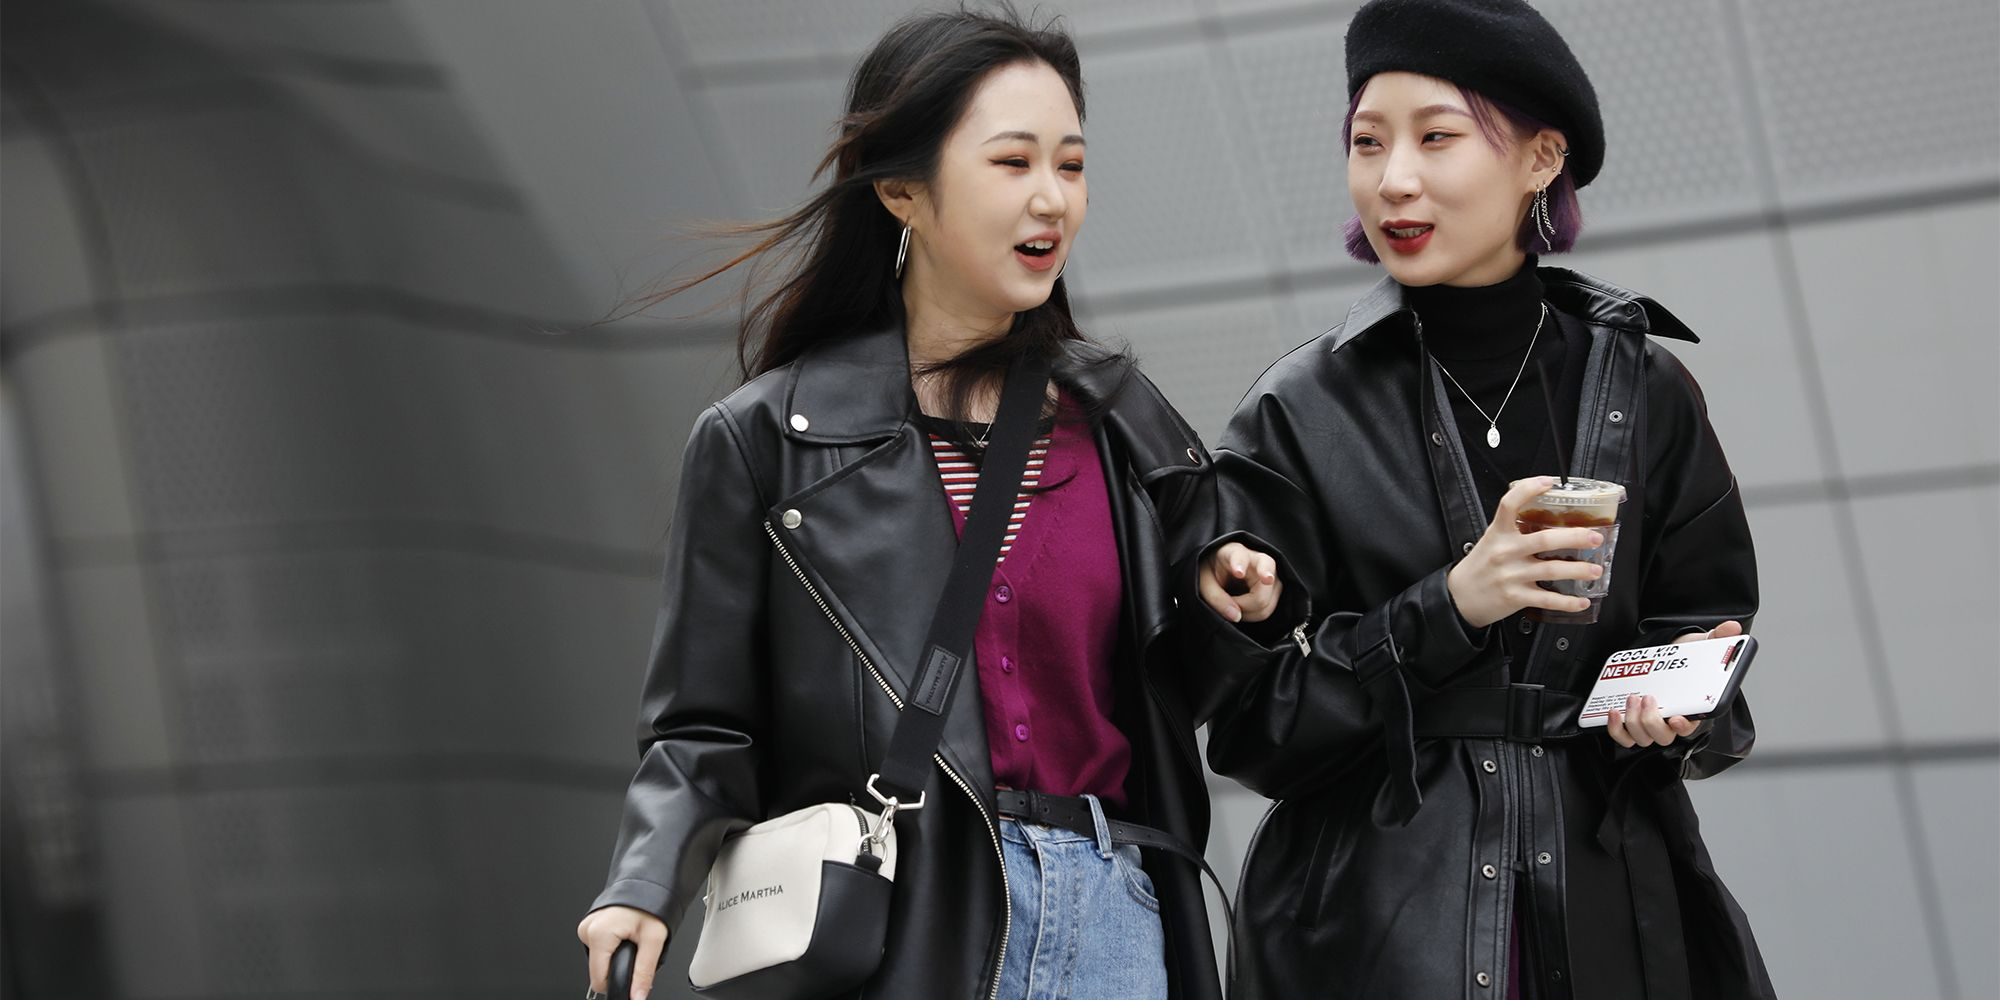 8 Cool Leather Jacket Outfit Ideas For Women How To Wear A Leather Jacket